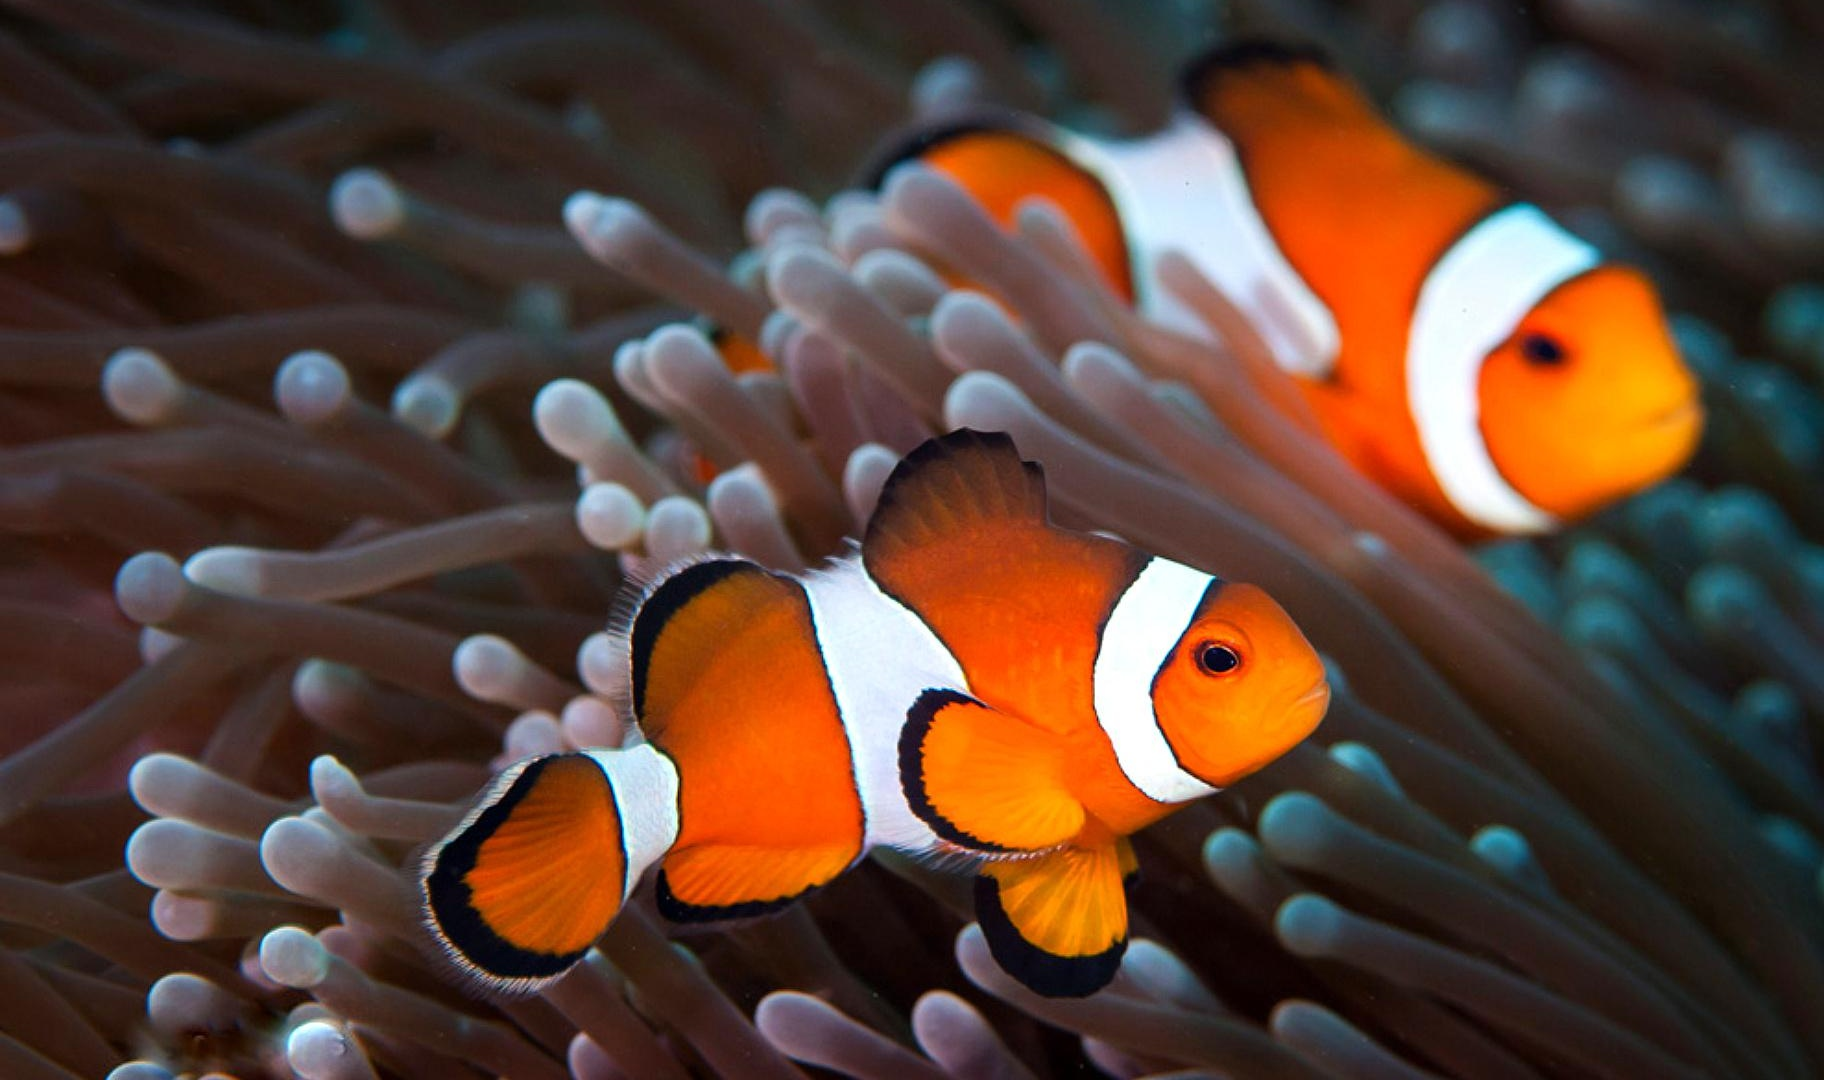 Clown Fish Wallpaper Widescreen Clown fish wal